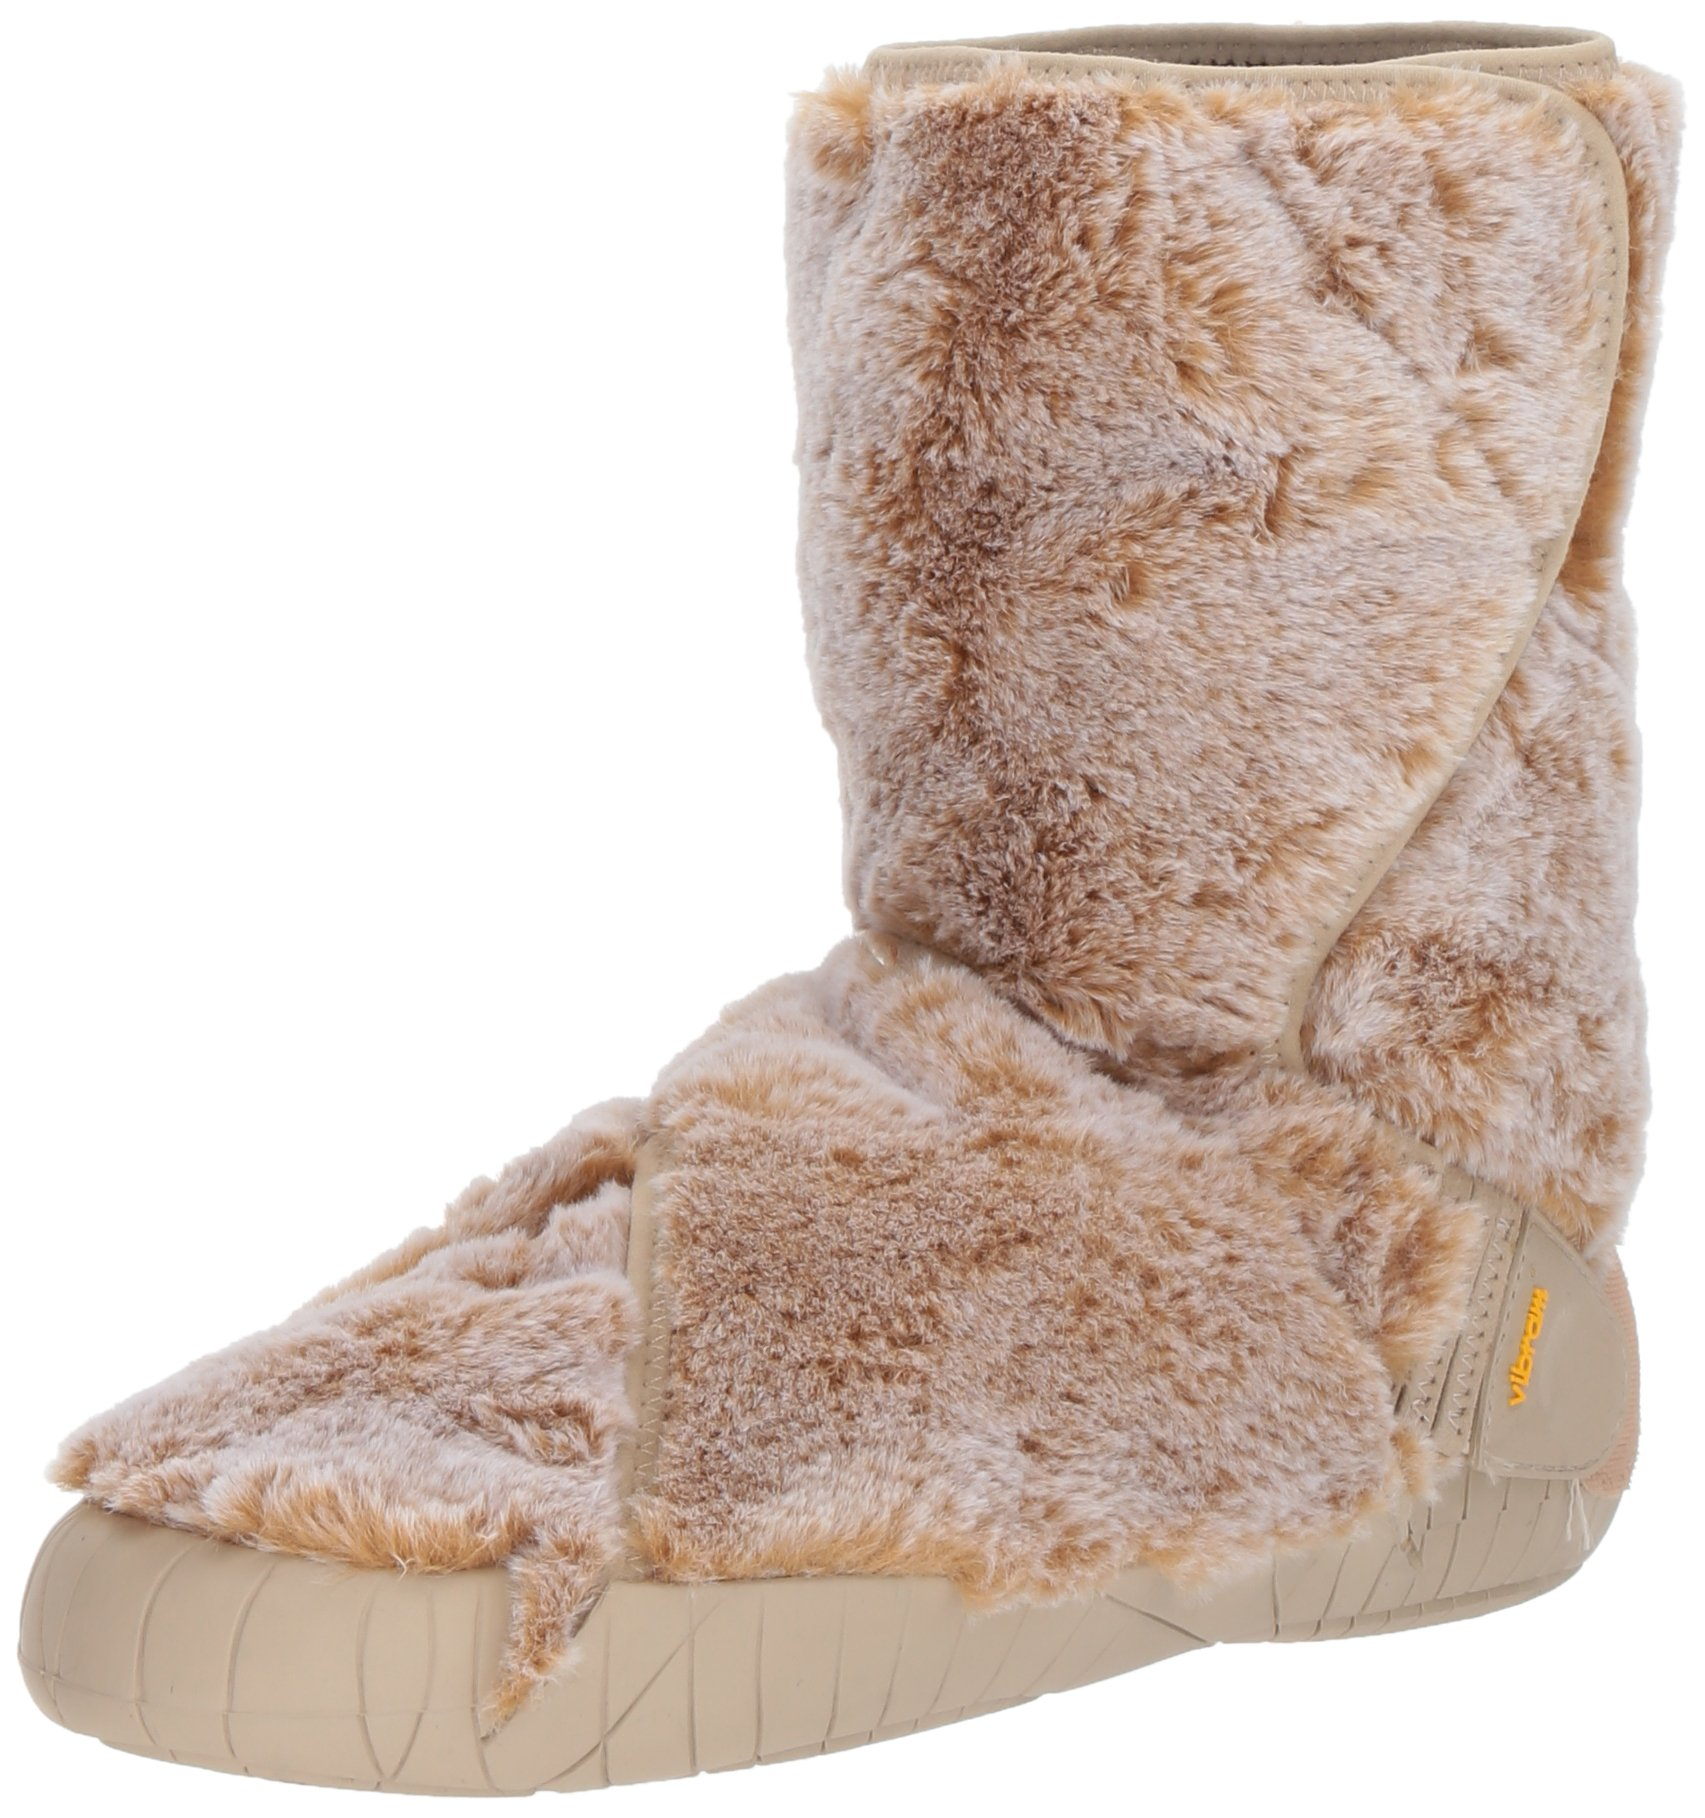 Vibram Furoshiki Mid Boot Lapland Sneaker, Beige, EU:42-43/UK Man:8-9/UK Woman:9-10.5/cm:26.5-27.5/US Man:9-10/US Woman:10-11.5